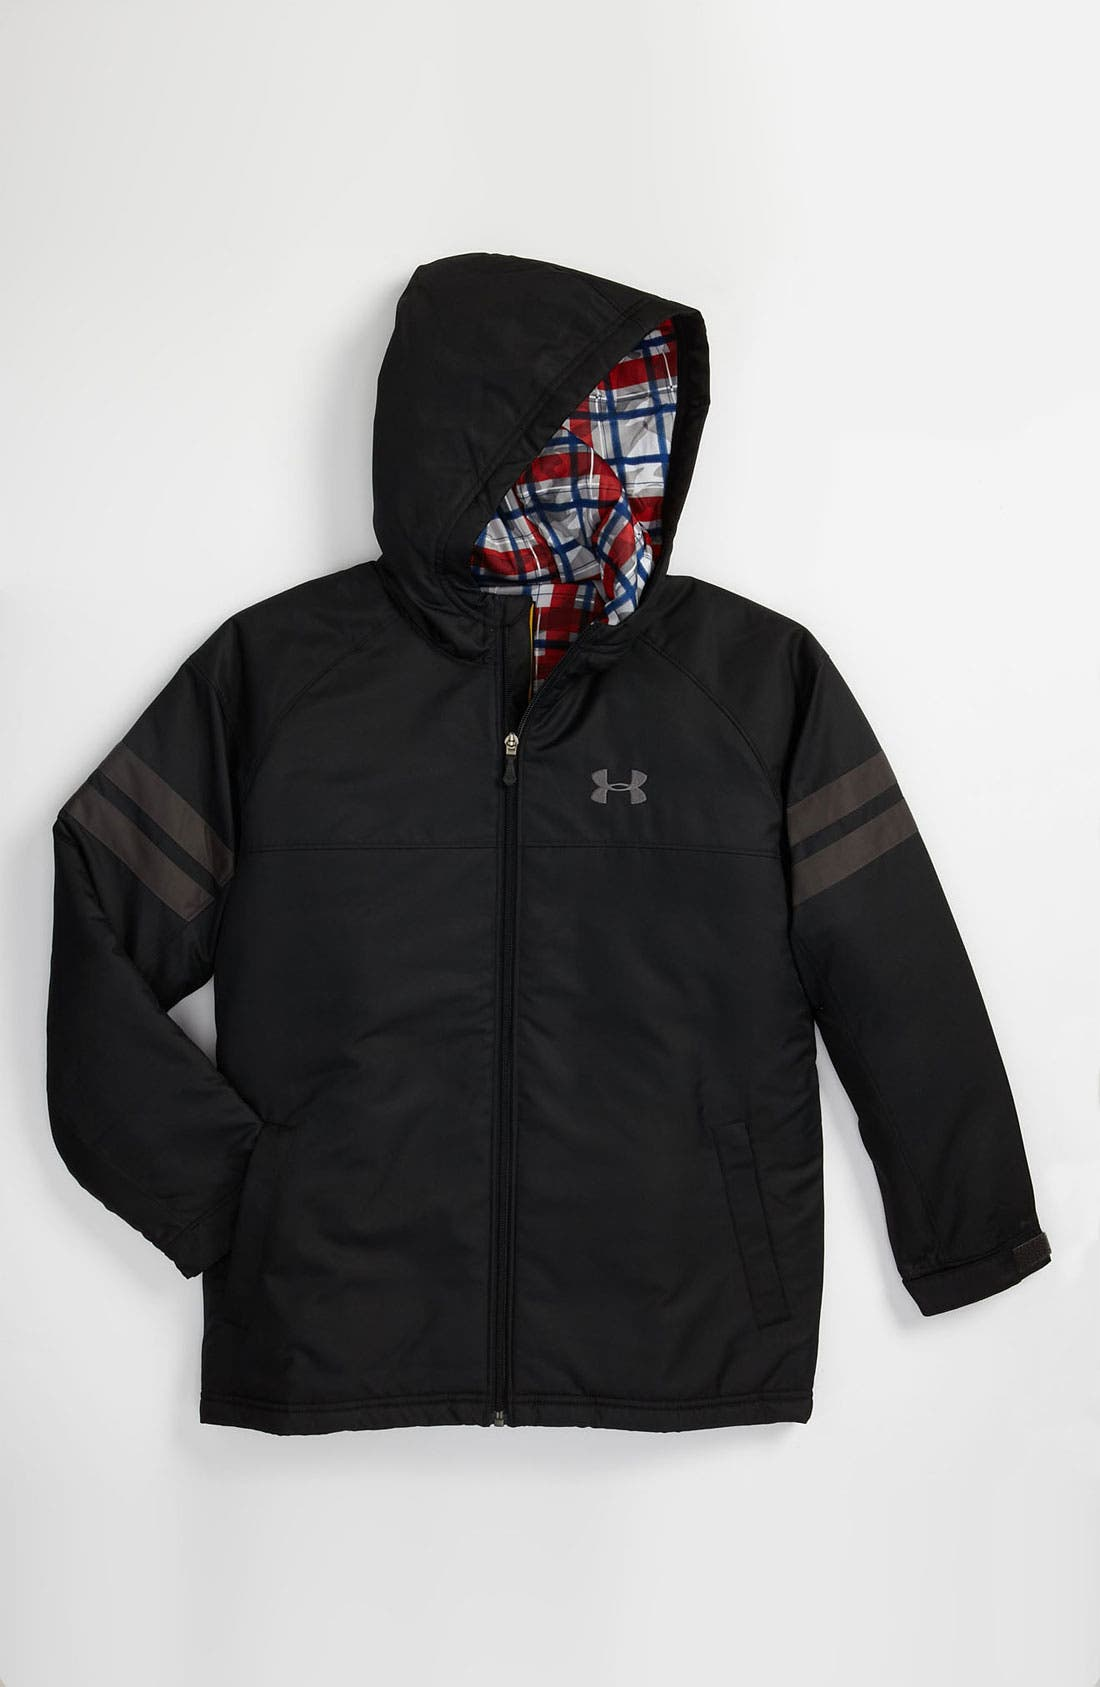 Main Image - Under Armour 'Universus' Jacket (Big Boys)